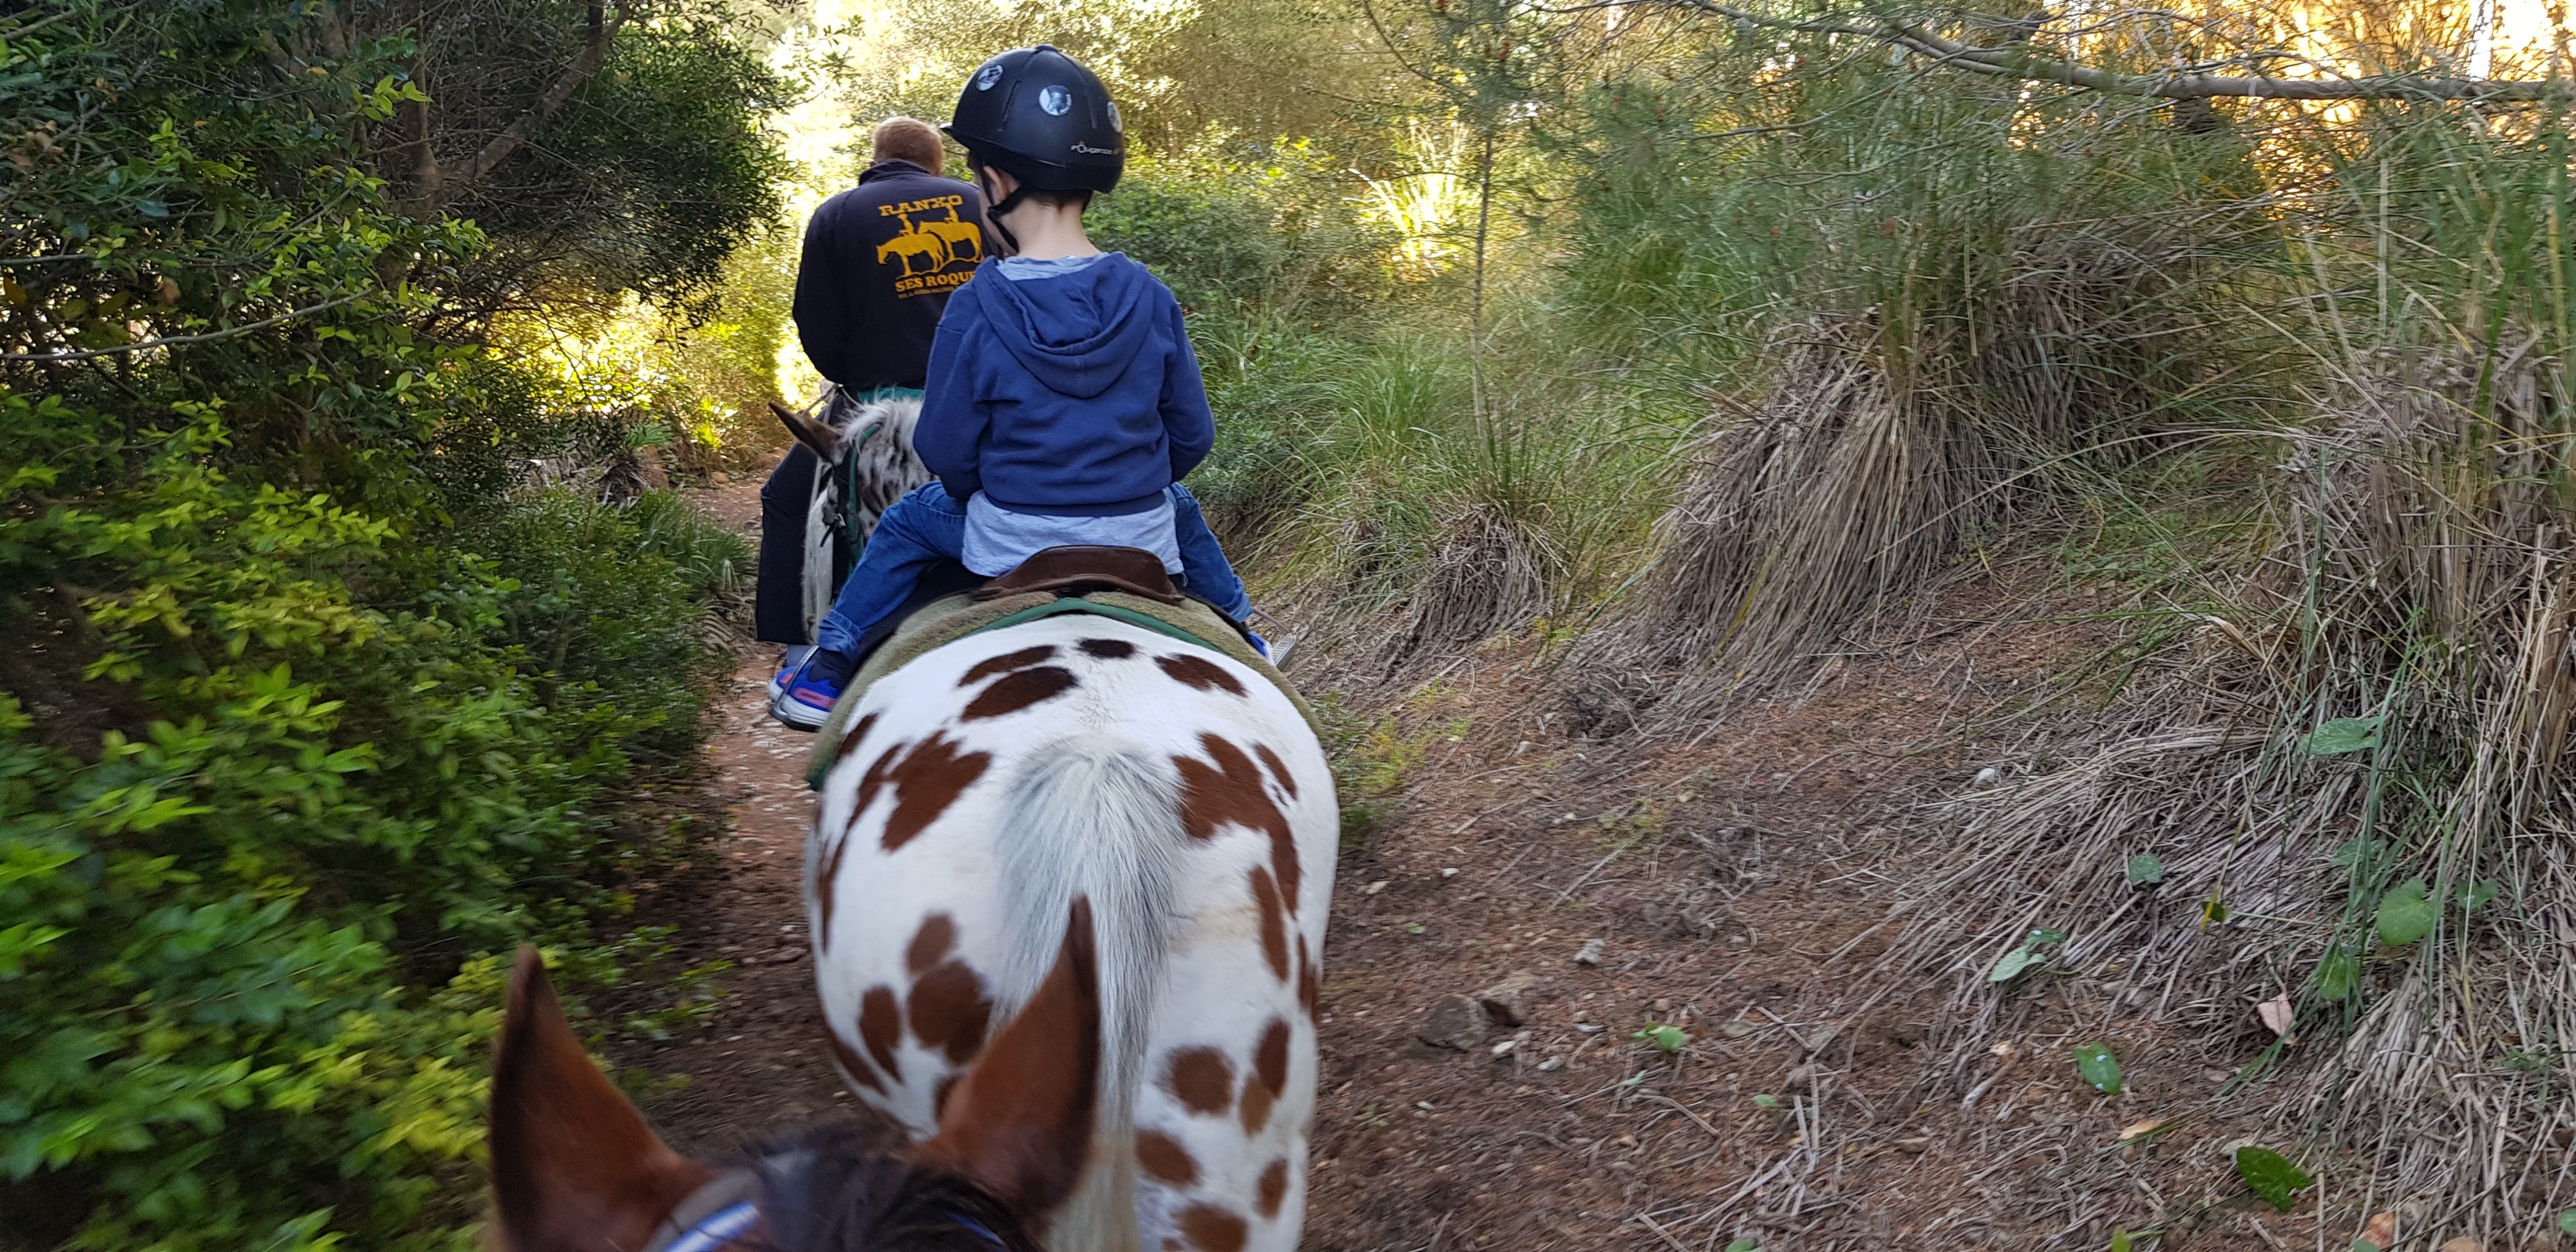 A grown-up and a child riding on horses through some woods.